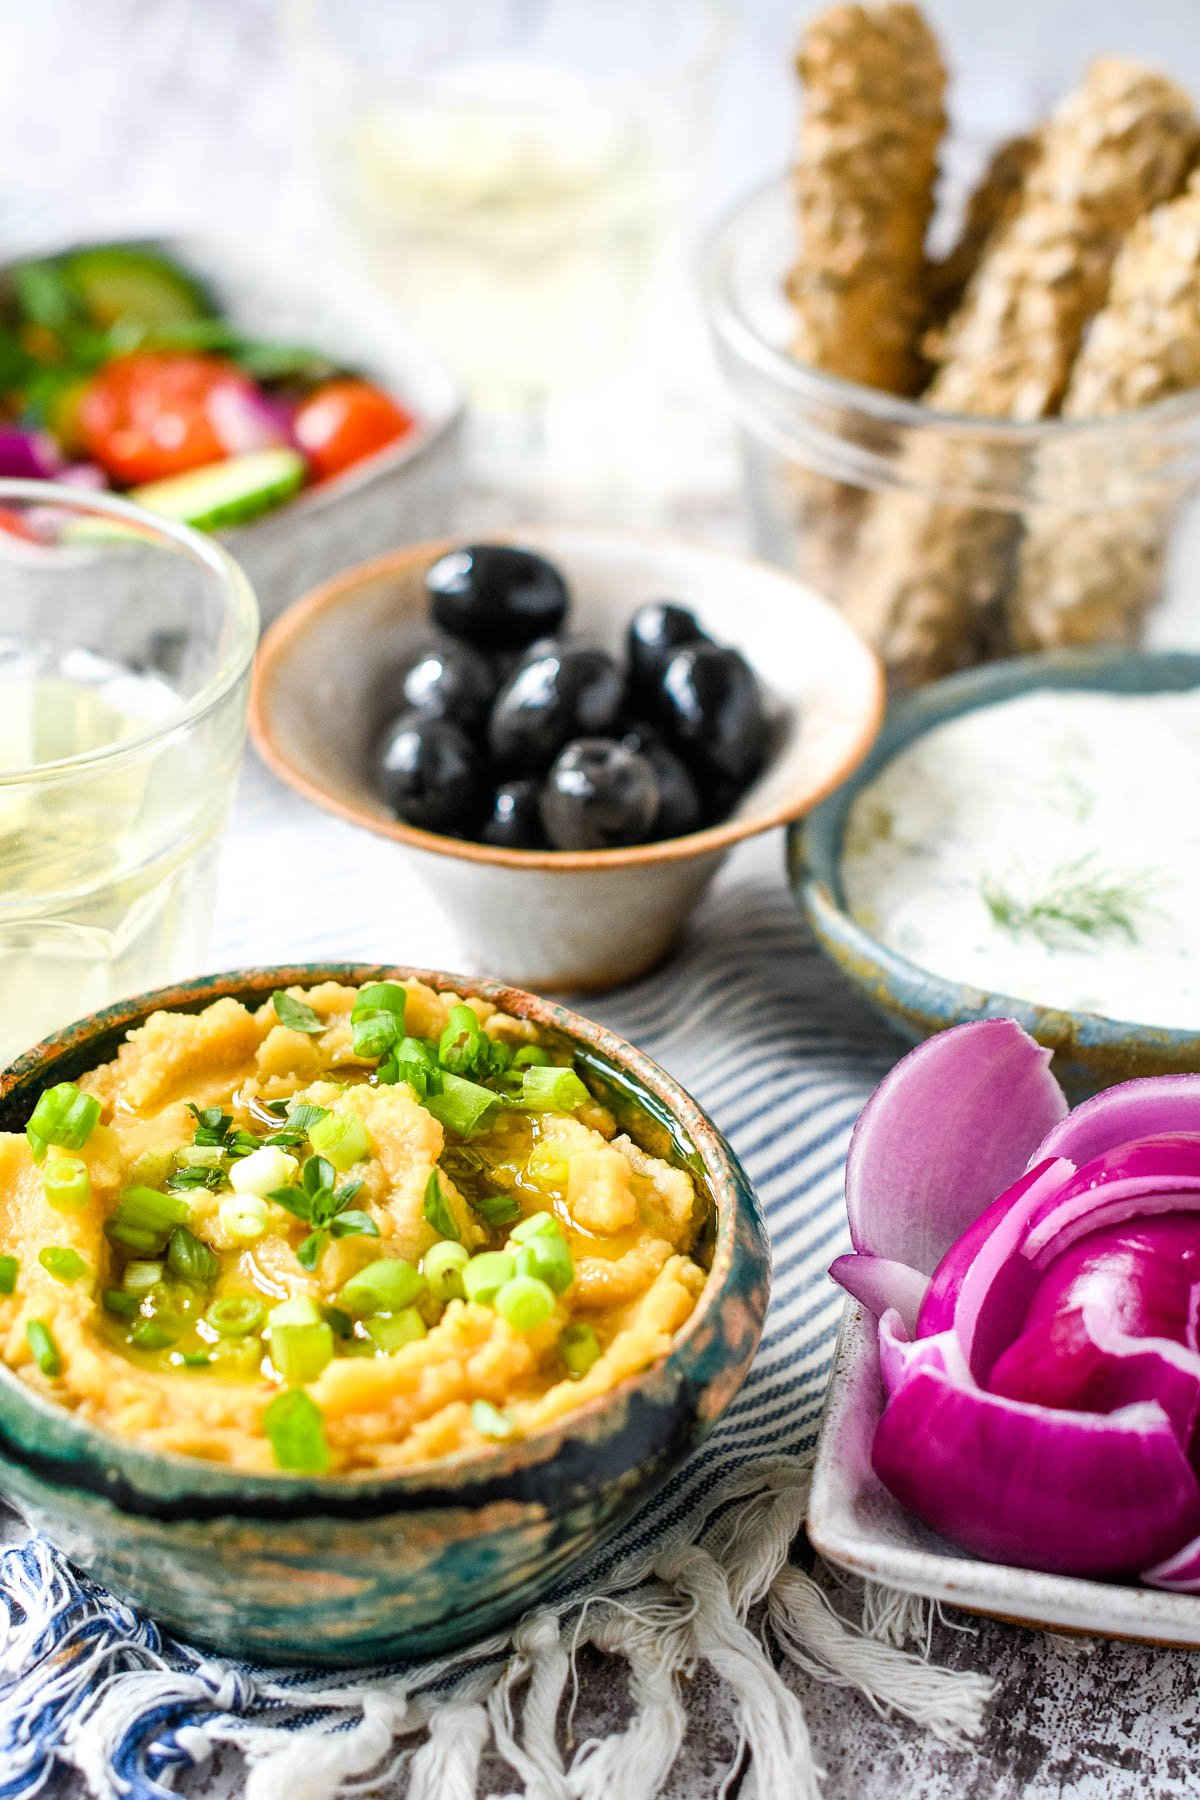 Greek fava dip with other dips, bread sticks and wine on table